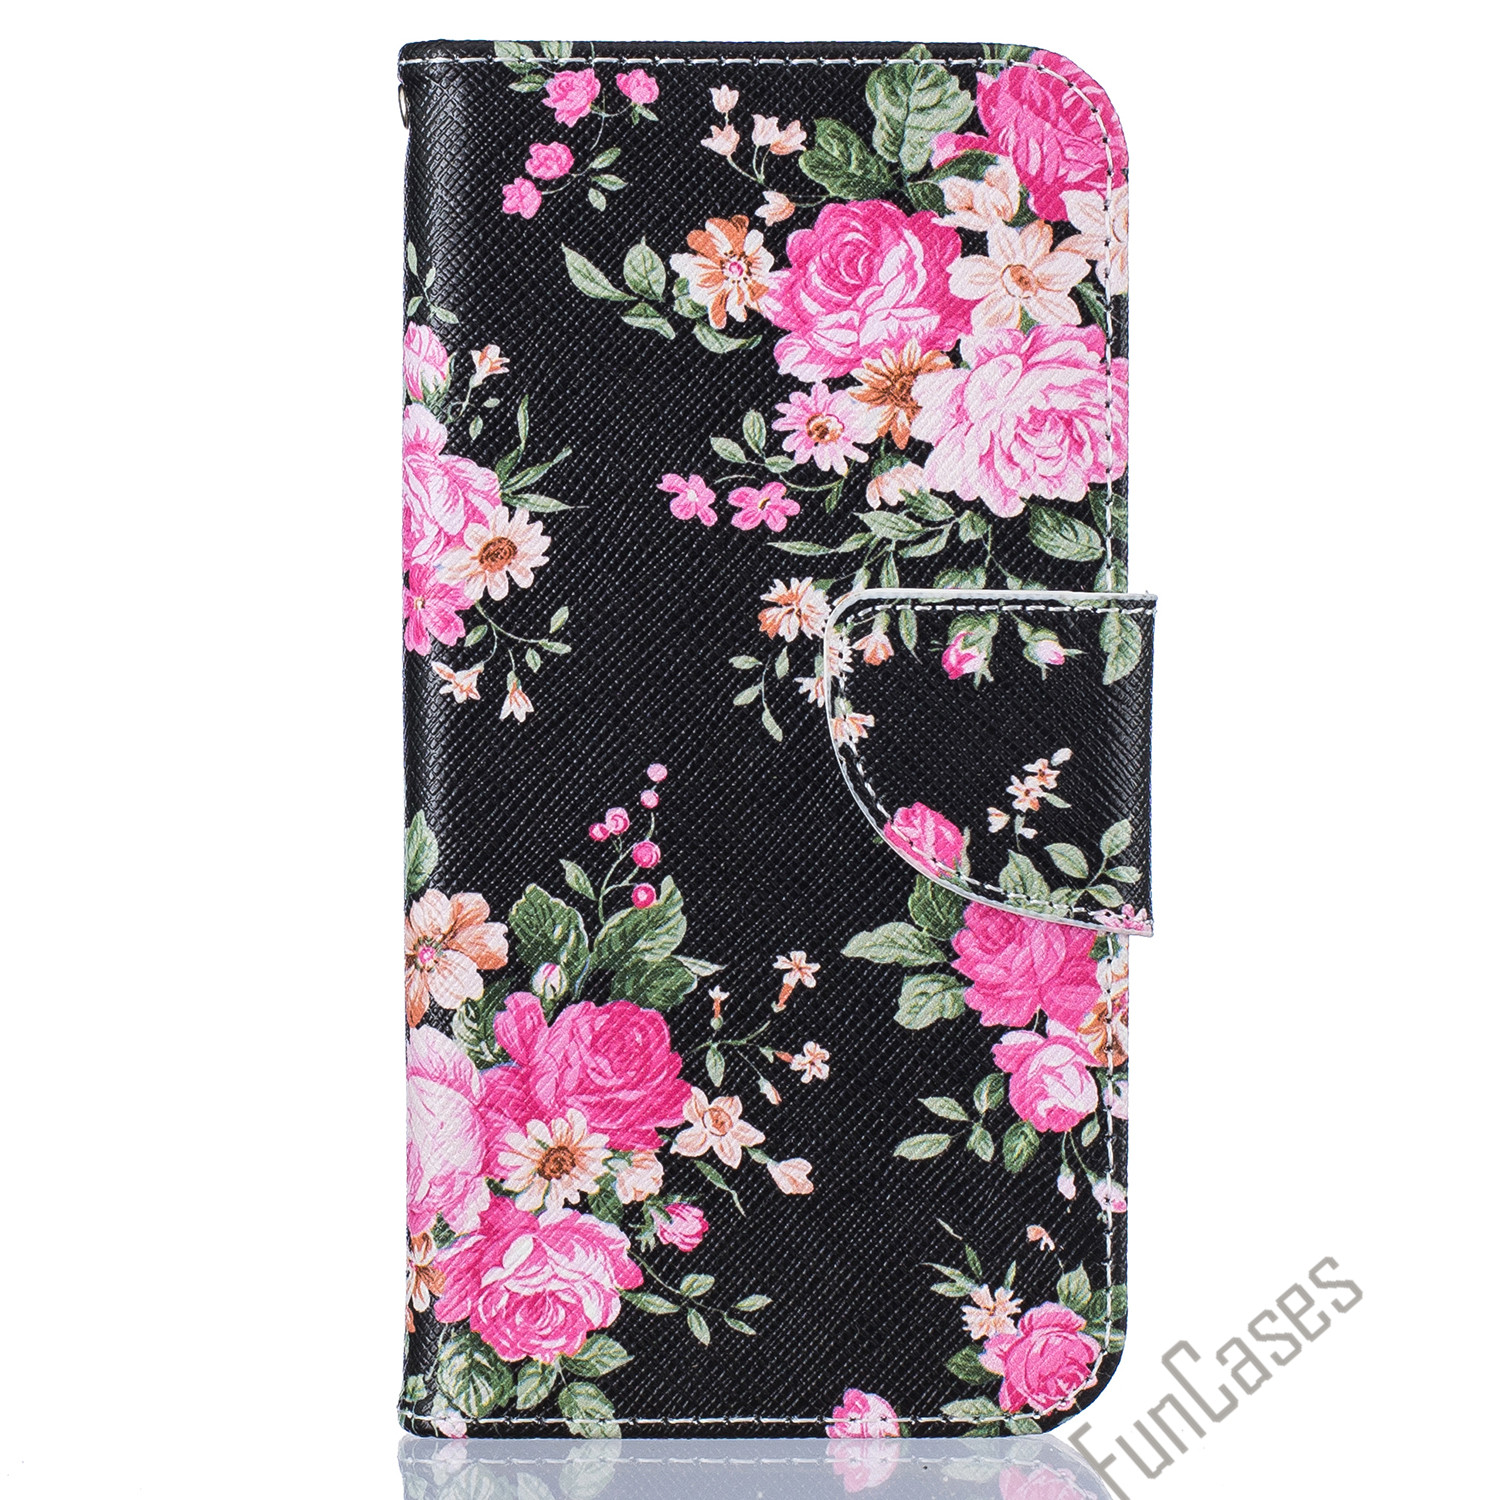 2016 New Art Print Fashion For Samsung Galaxy S7 Cases Wallet Flip Cover PU Leather Card Slot Photo Frame Cover Bag Stand Capa